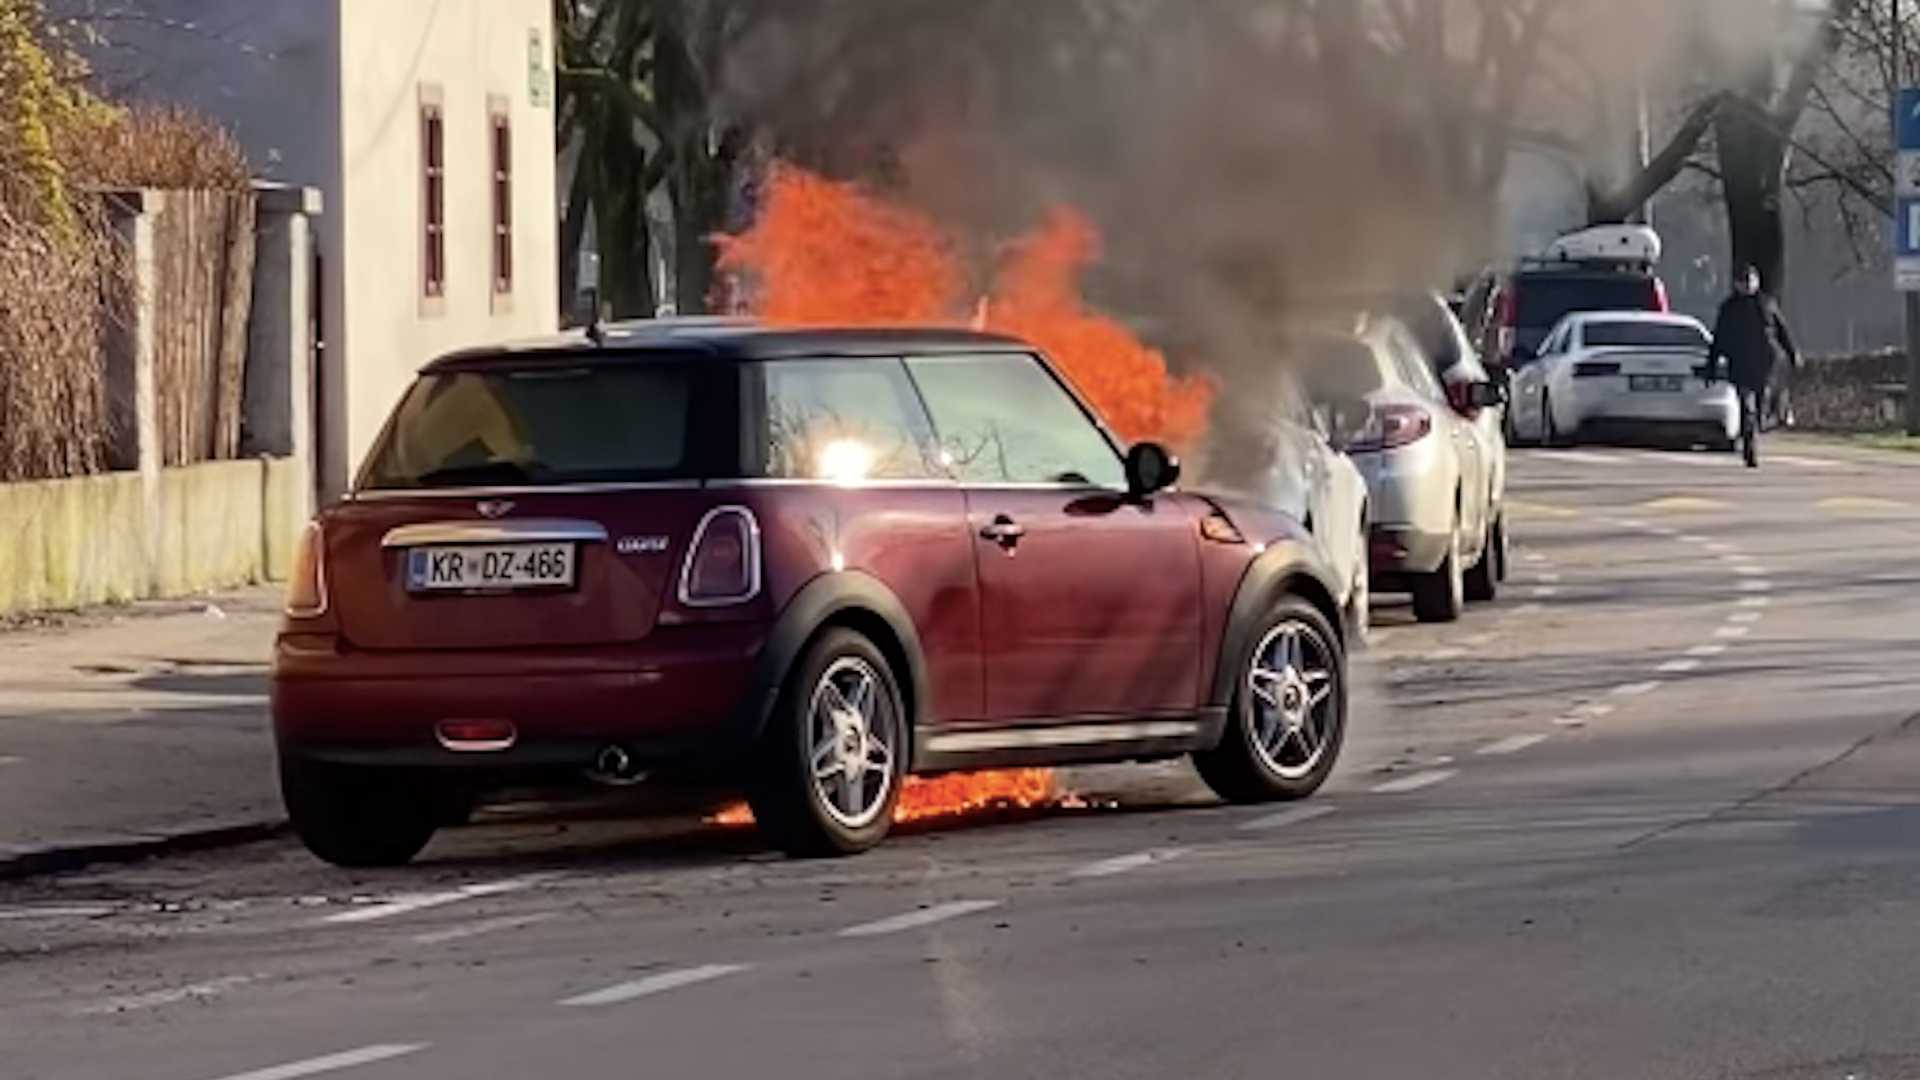 Watch a fire cause a Mini's engine to start on it own, ram parked cars